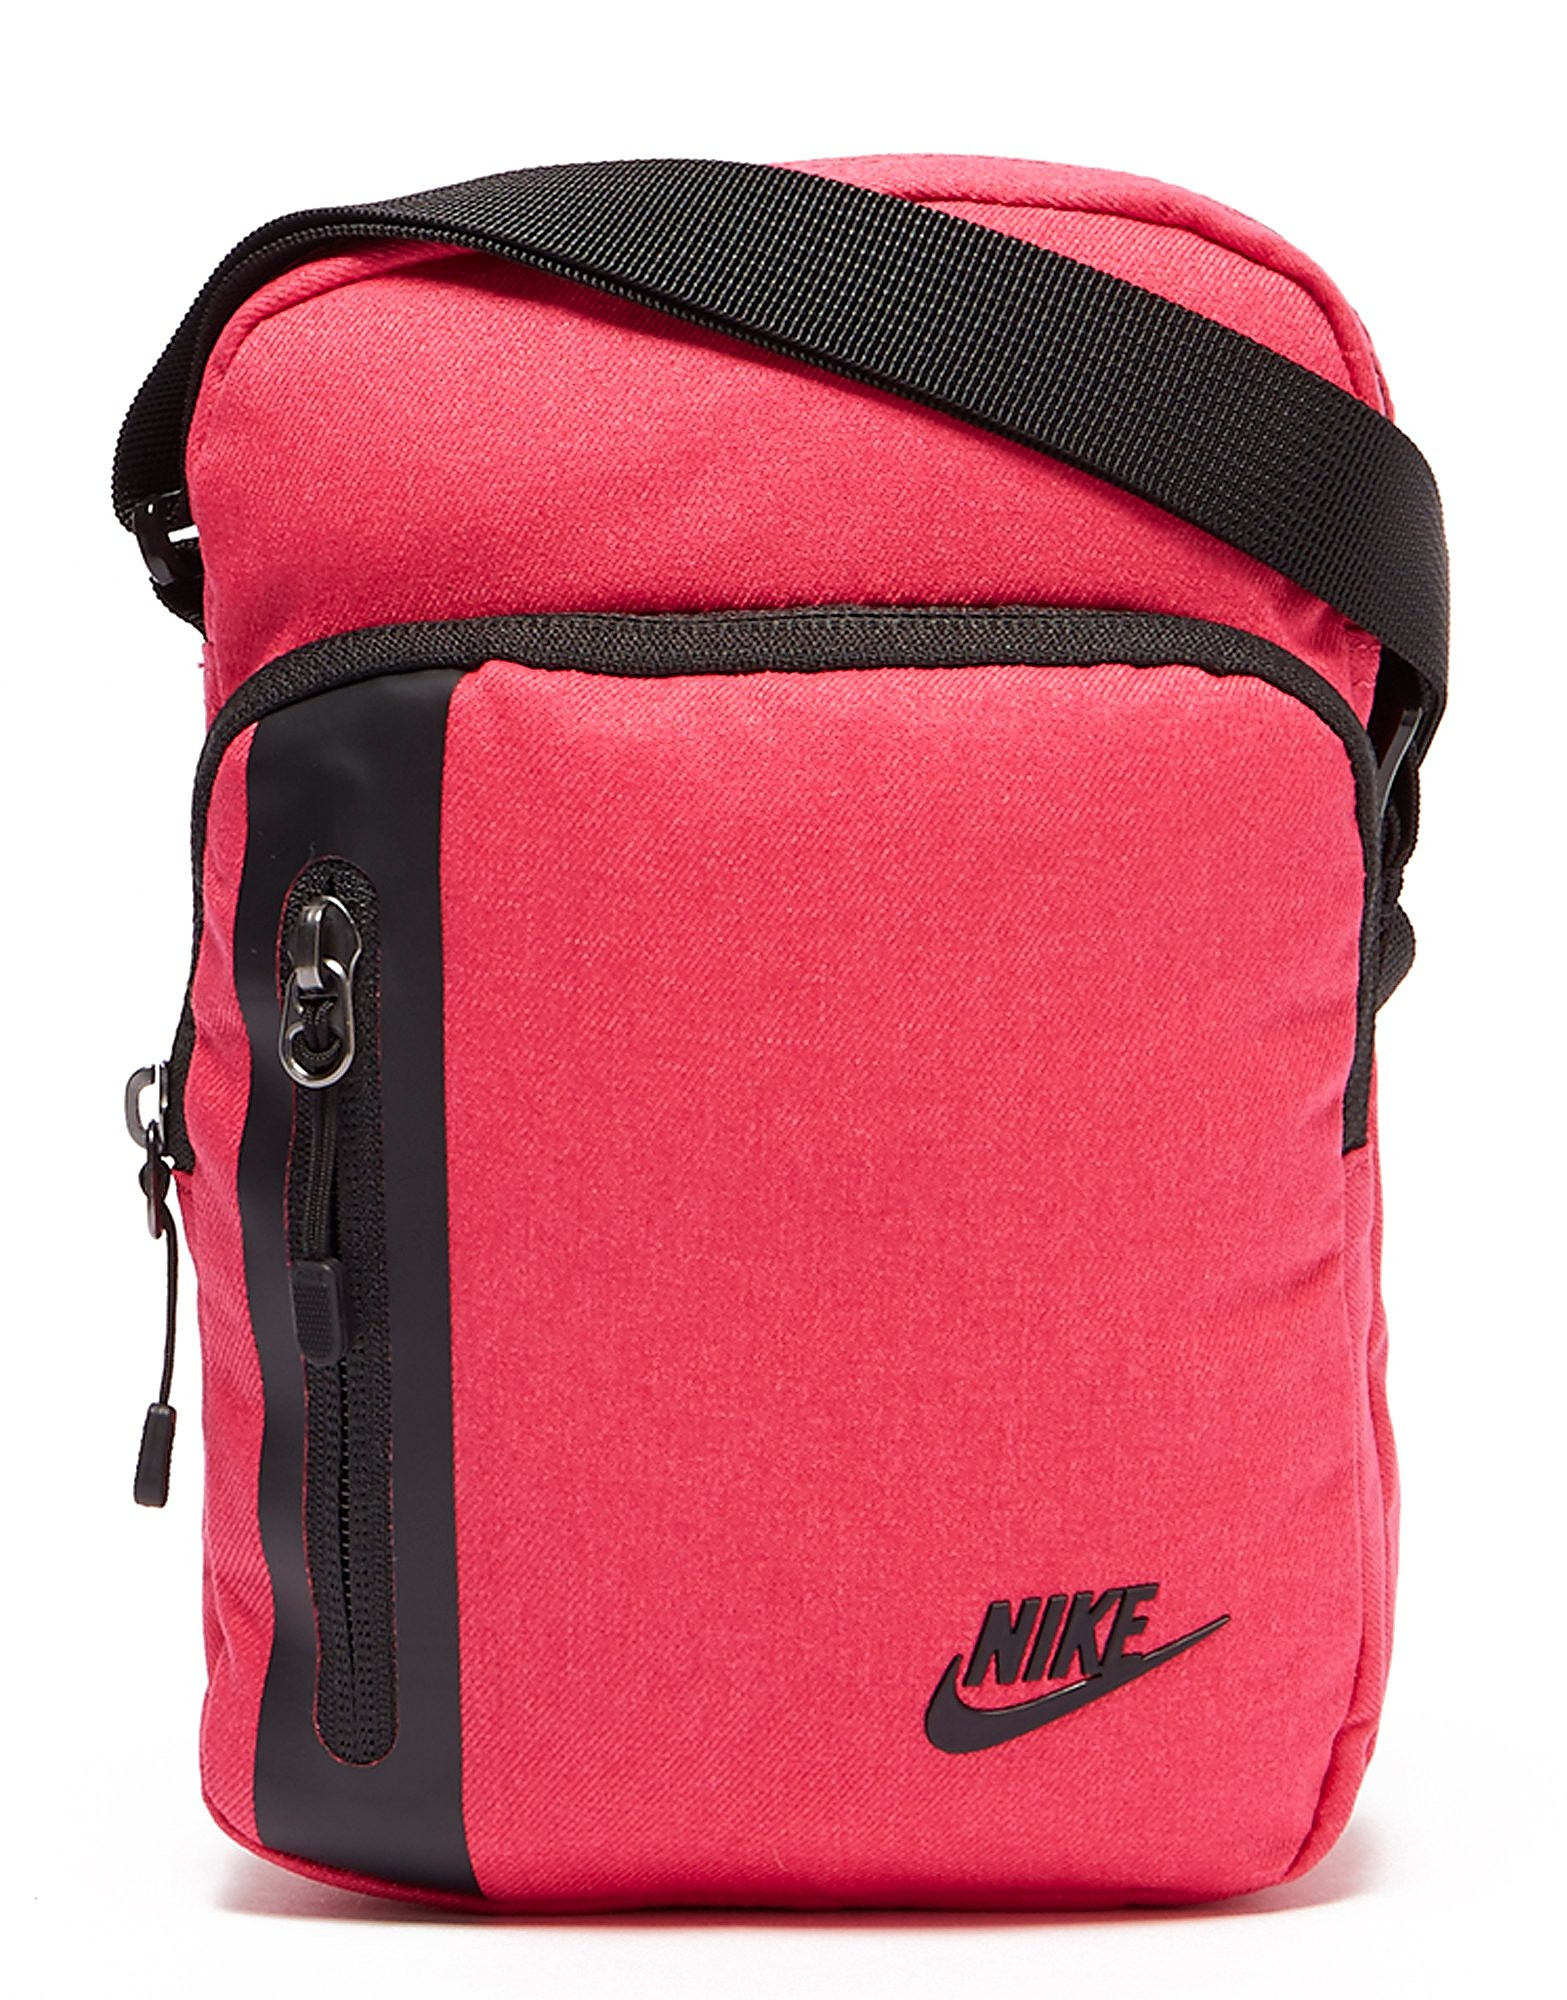 Nike Core Small Items 3.0 Pouch Bag